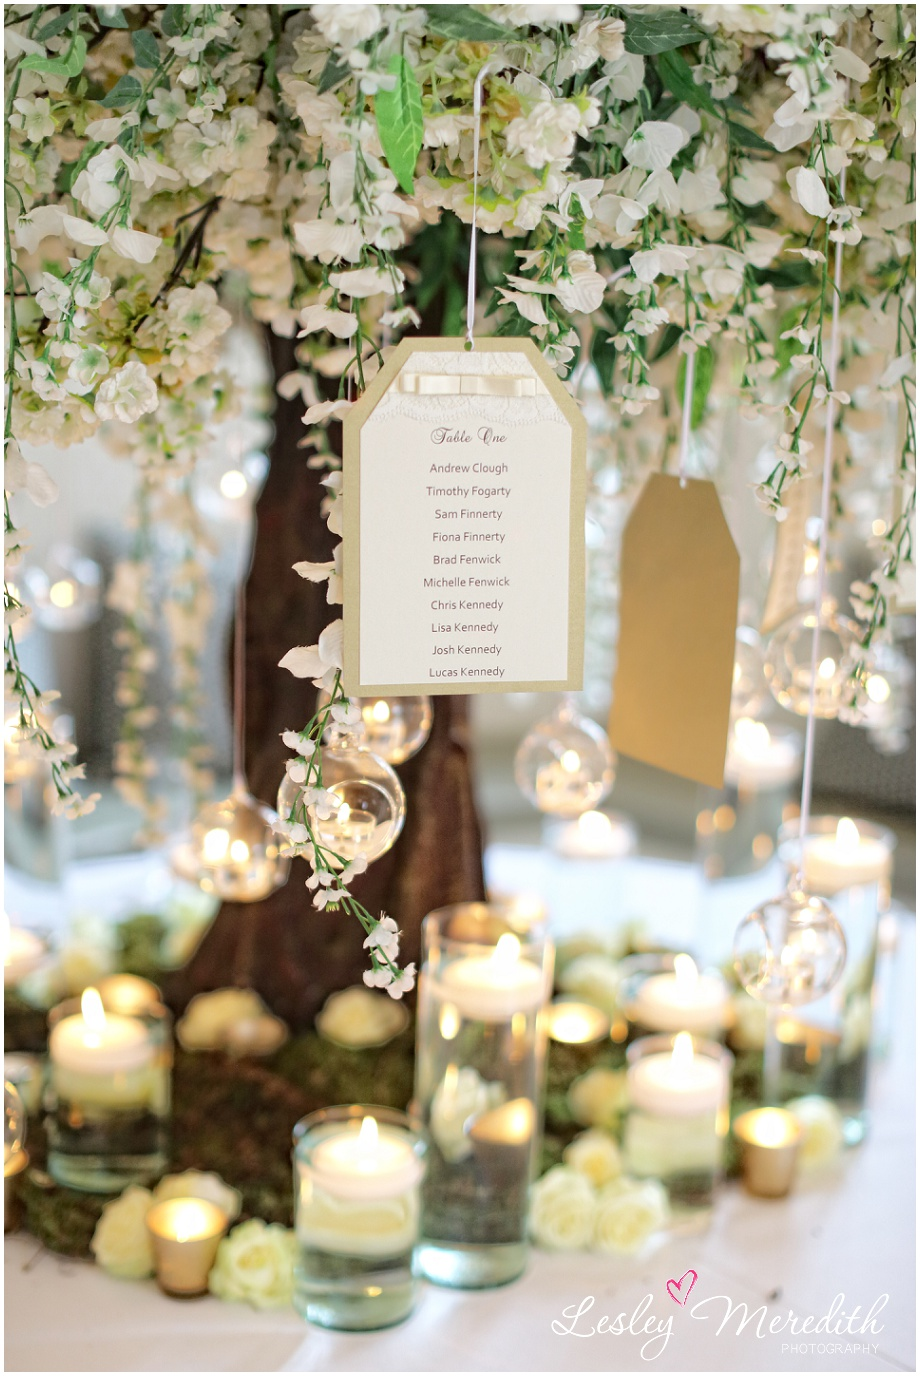 Lesley Meredith Photography (48)